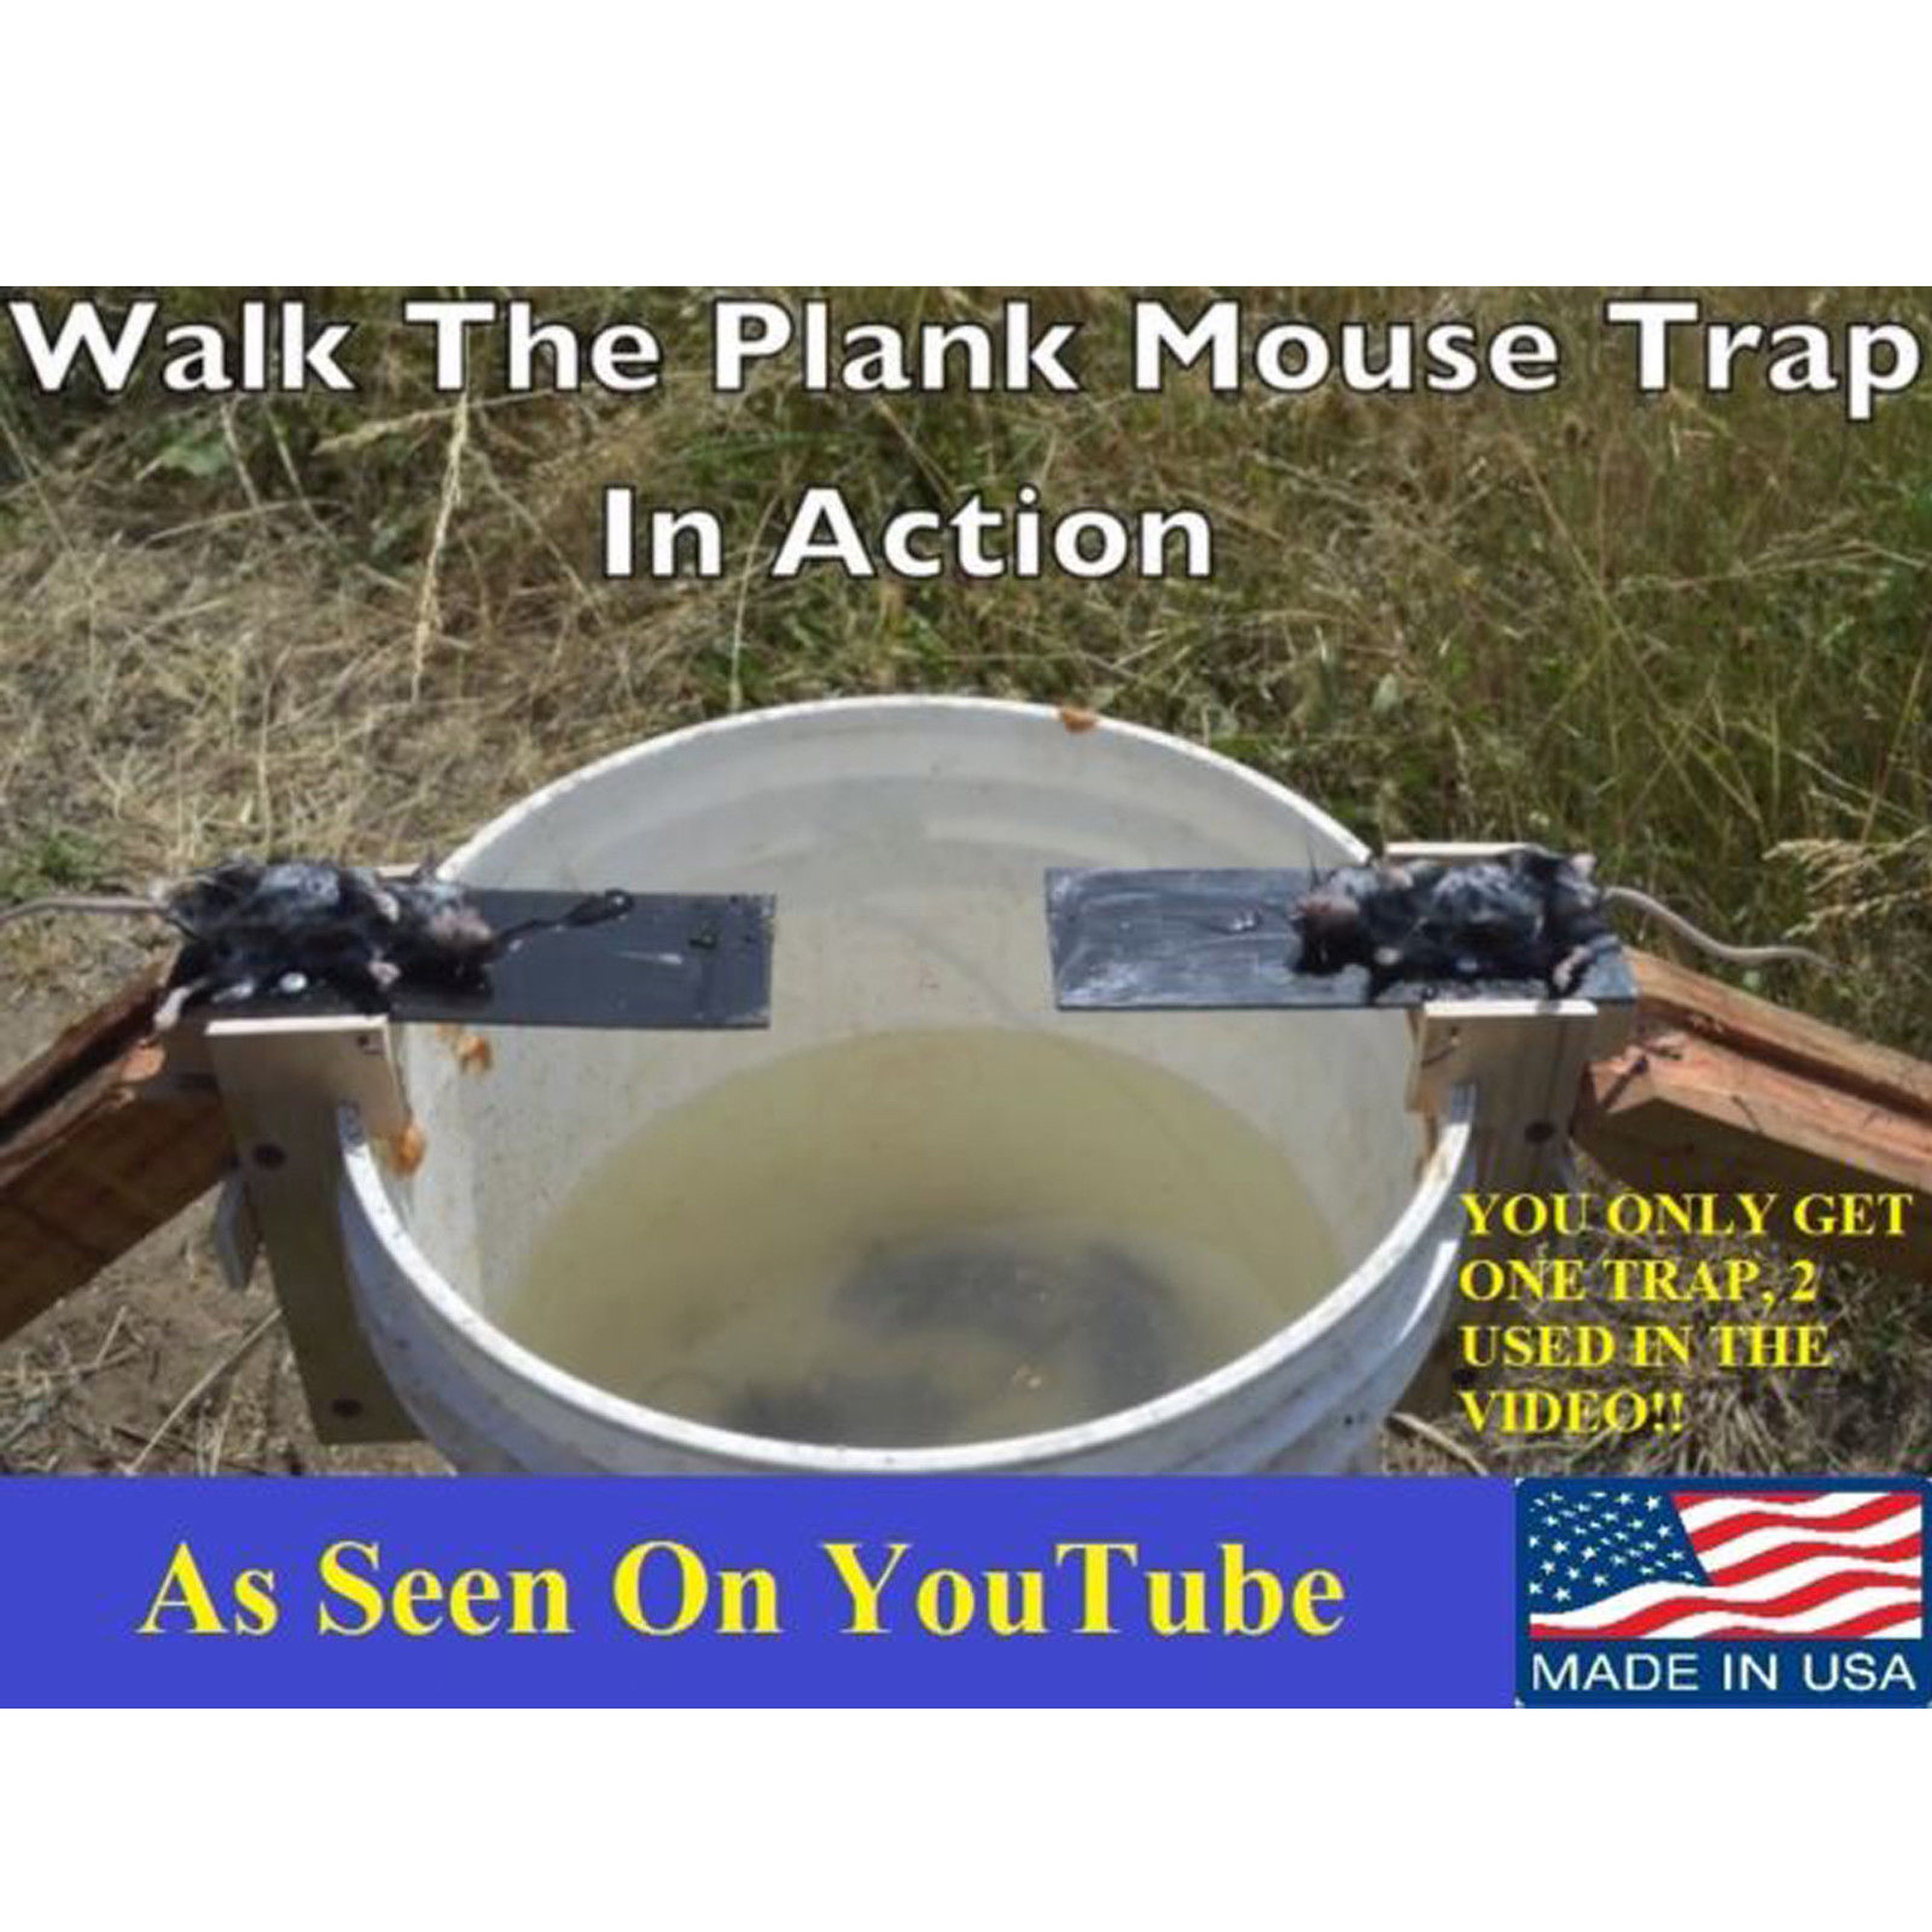 Walk The Plank Mouse Trap Wooden Reusable Mice Catcher Auto Reset